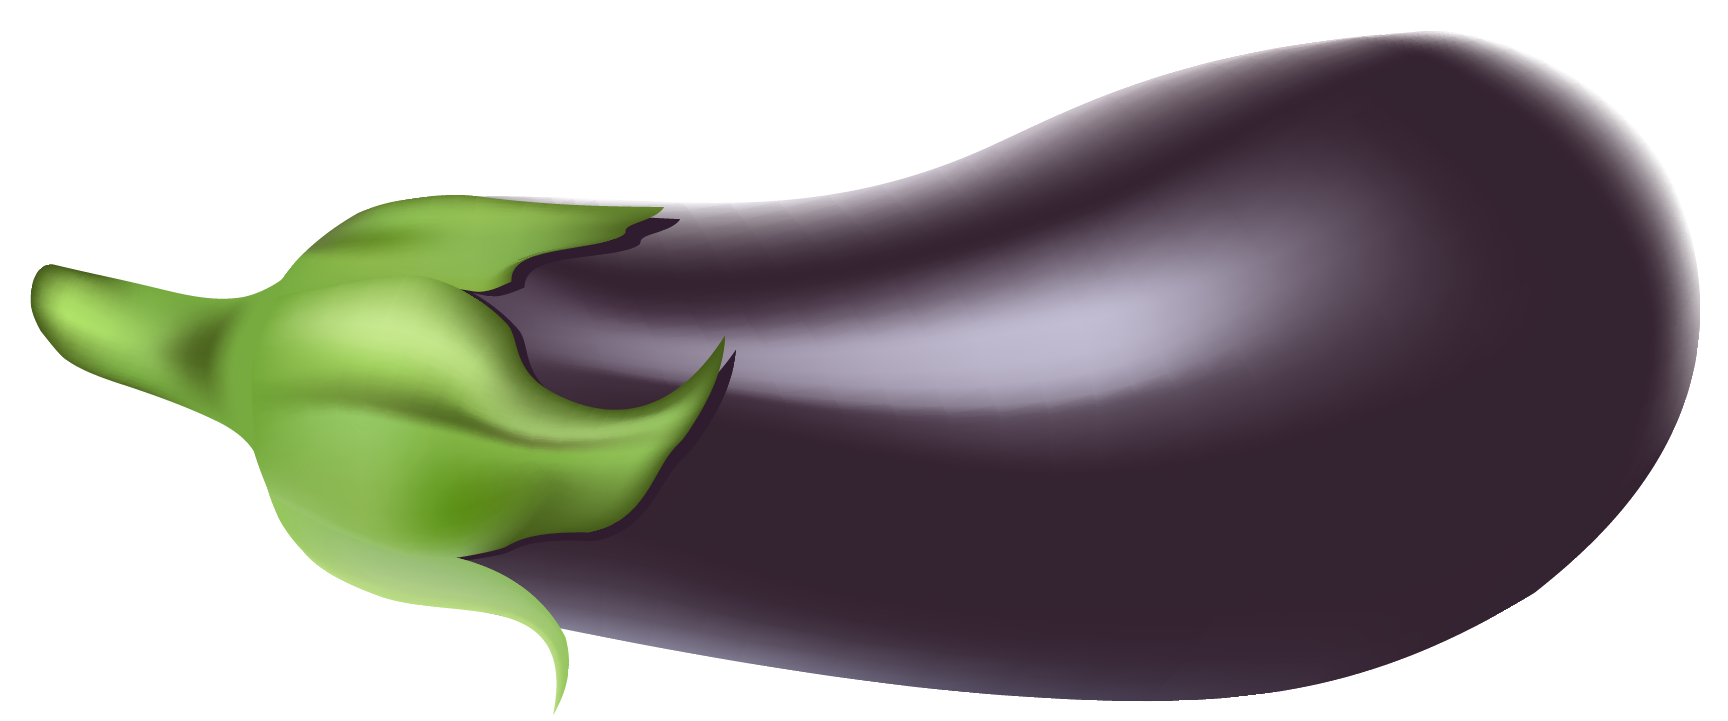 Eggplant png picture gallery. Heart clipart vegetable